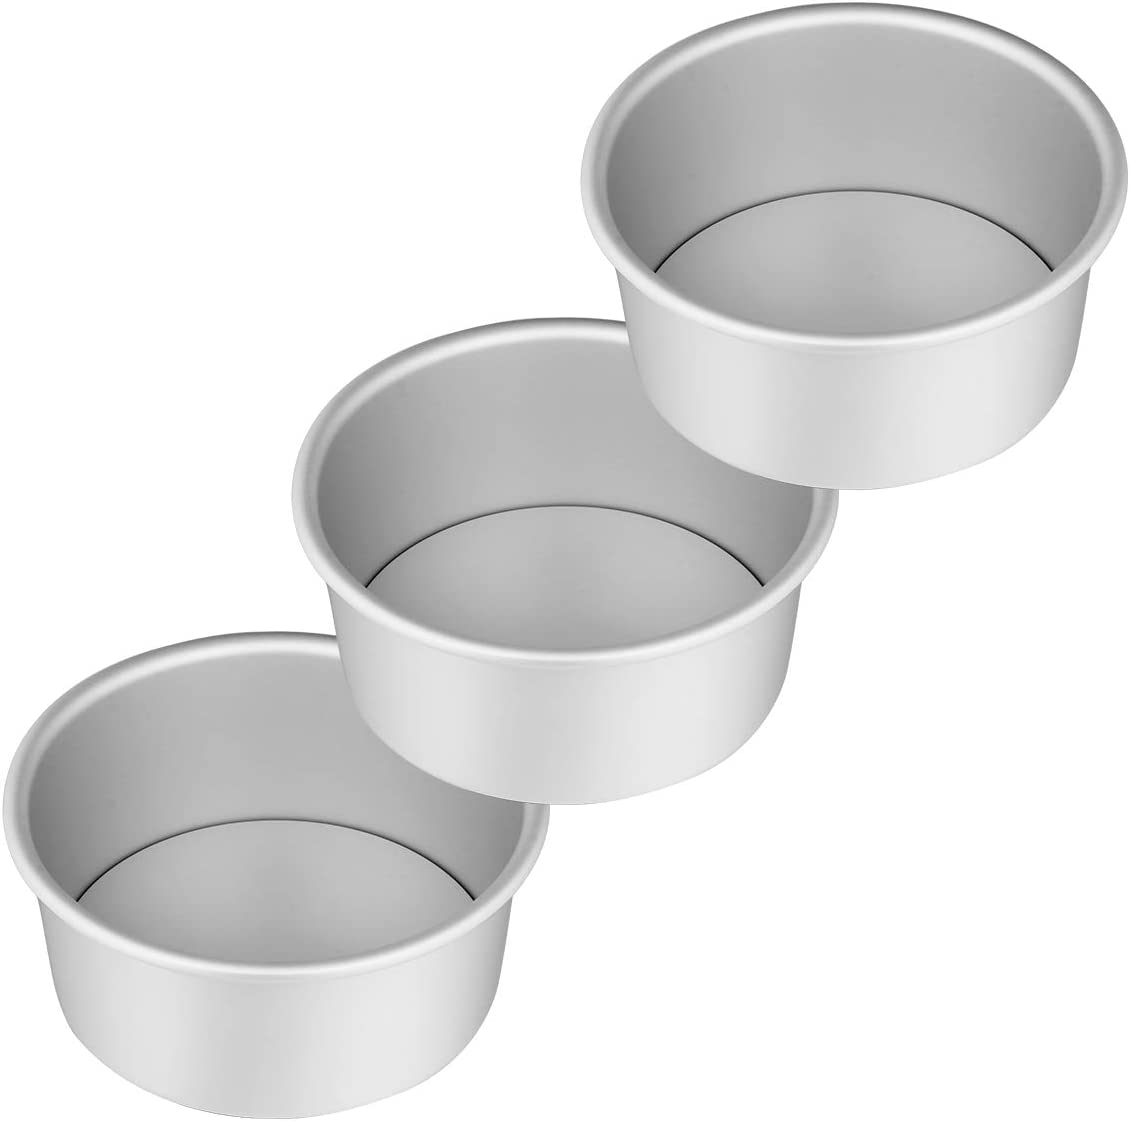 AIEVE 6 Inch Cake Pans, Set of 3 Durable Aluminum Round Cake Pans Cake Mold Baking Pan Cake Mould with Removable Bottom for Cheese Cake Chiffon Cake or Smash Cake in Home Party, Birthday and Wedding